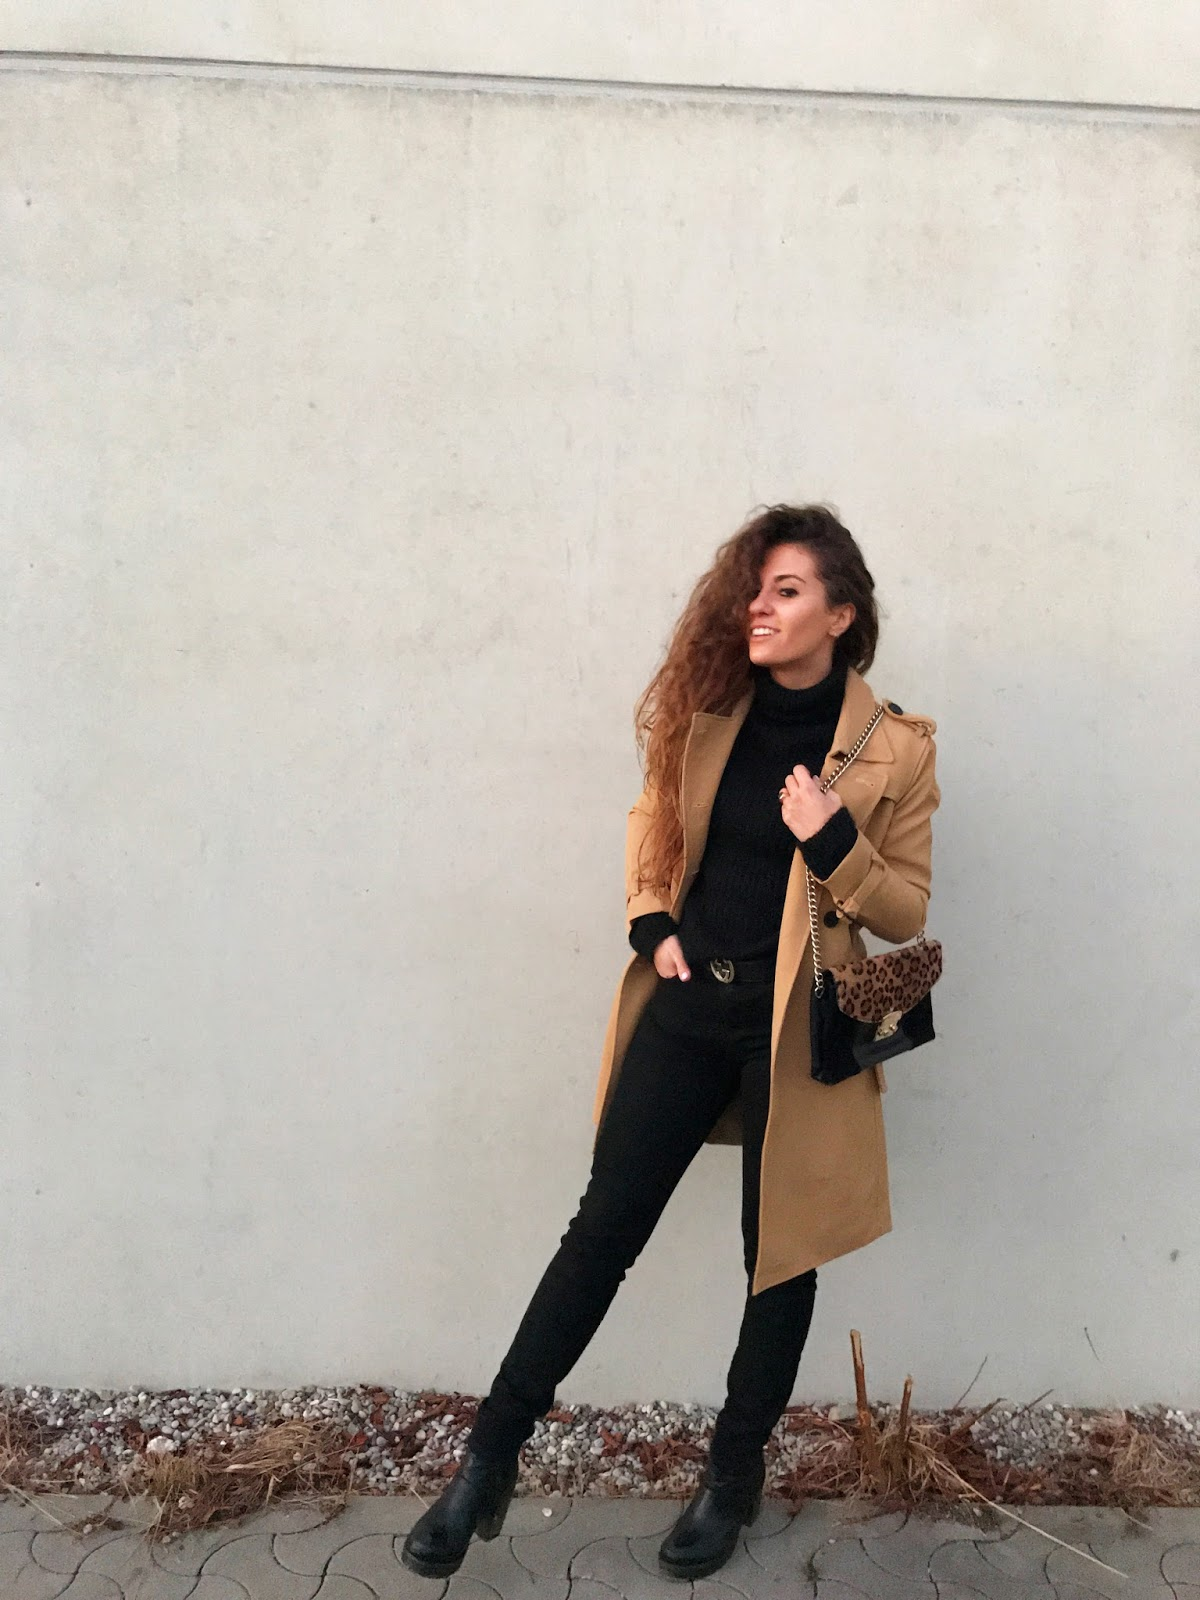 Sette Cucina Urbana Orari Facts You Didn T Know About Trench Coats Trench Coat Outfit